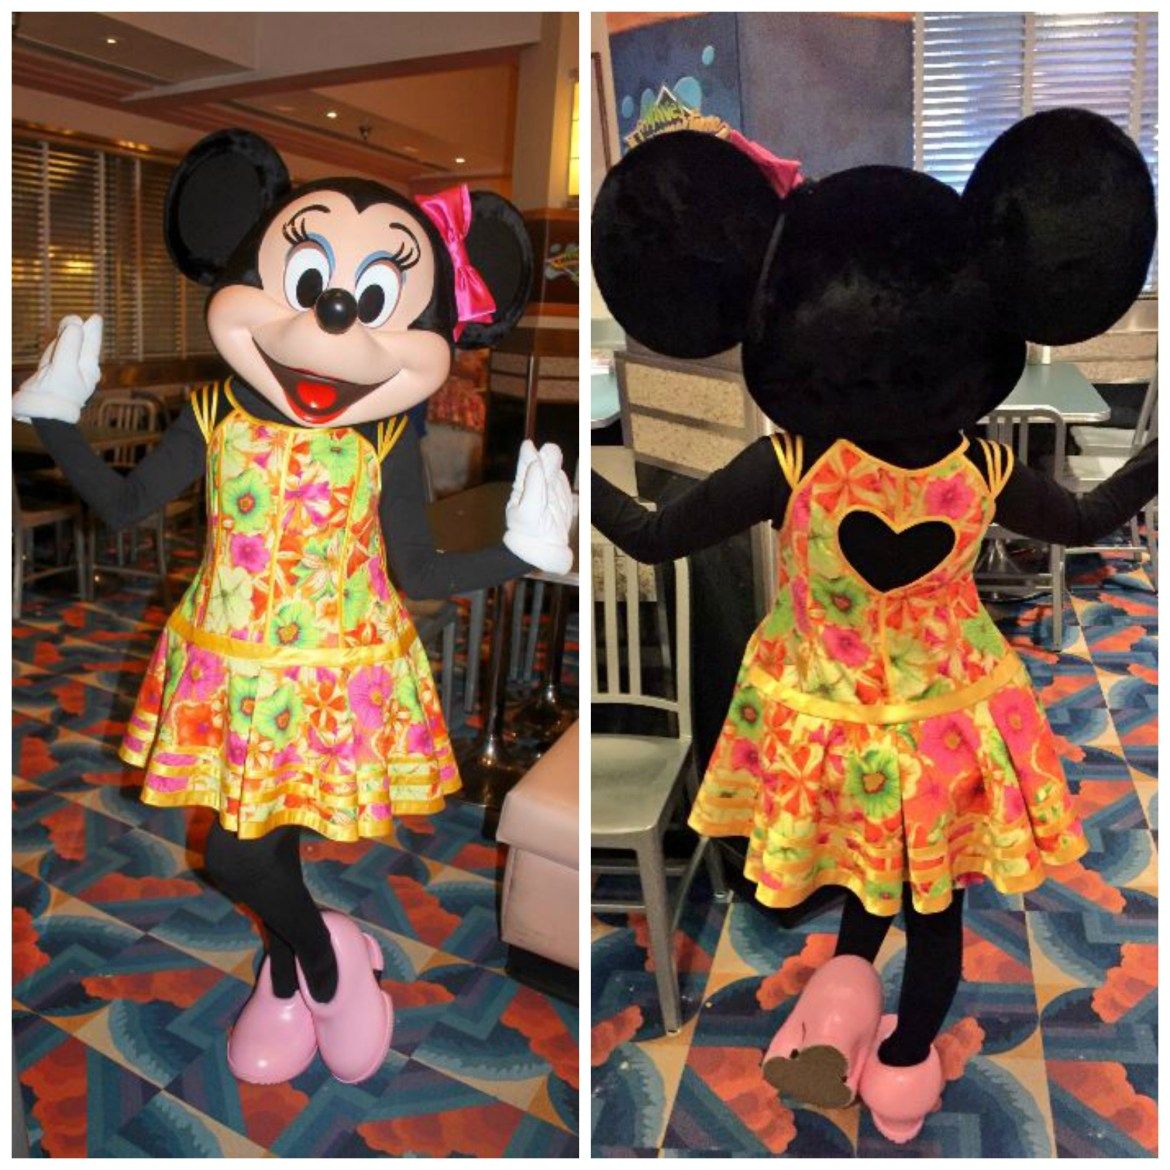 Cute Summer Outfits for the gang at Minnie's Summertime Dine at Hollywood & Vine